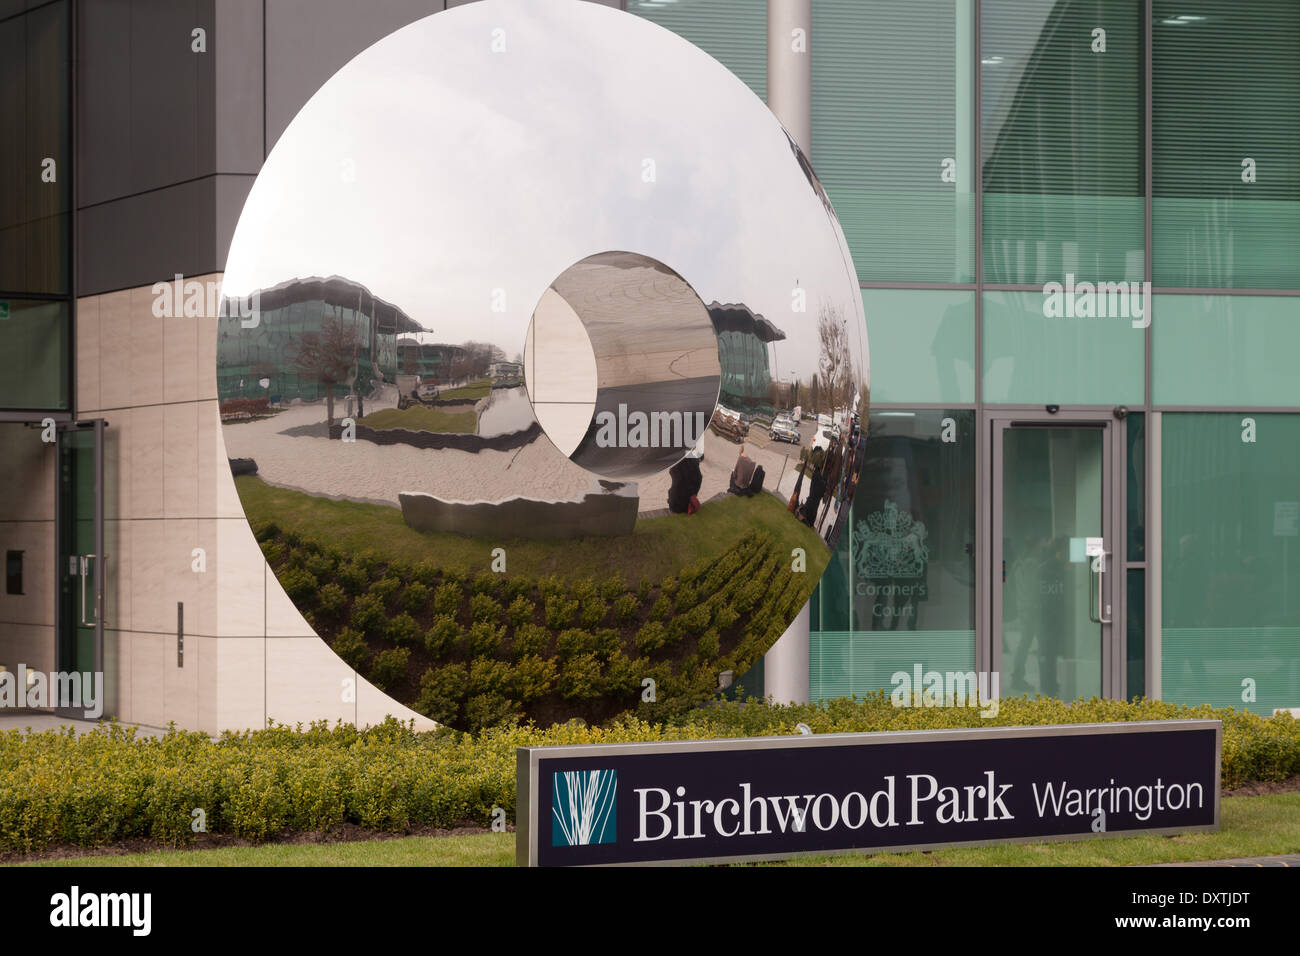 Warrington, Cheshire, UK. 31st Mar, 2014. 305 Bridgewater Place at Birchwood Park in Warrington, chosen as the venue for fresh inquests into the Hillsborough disaster. Credit:  Adam Vaughan/Alamy Live News - Stock Image